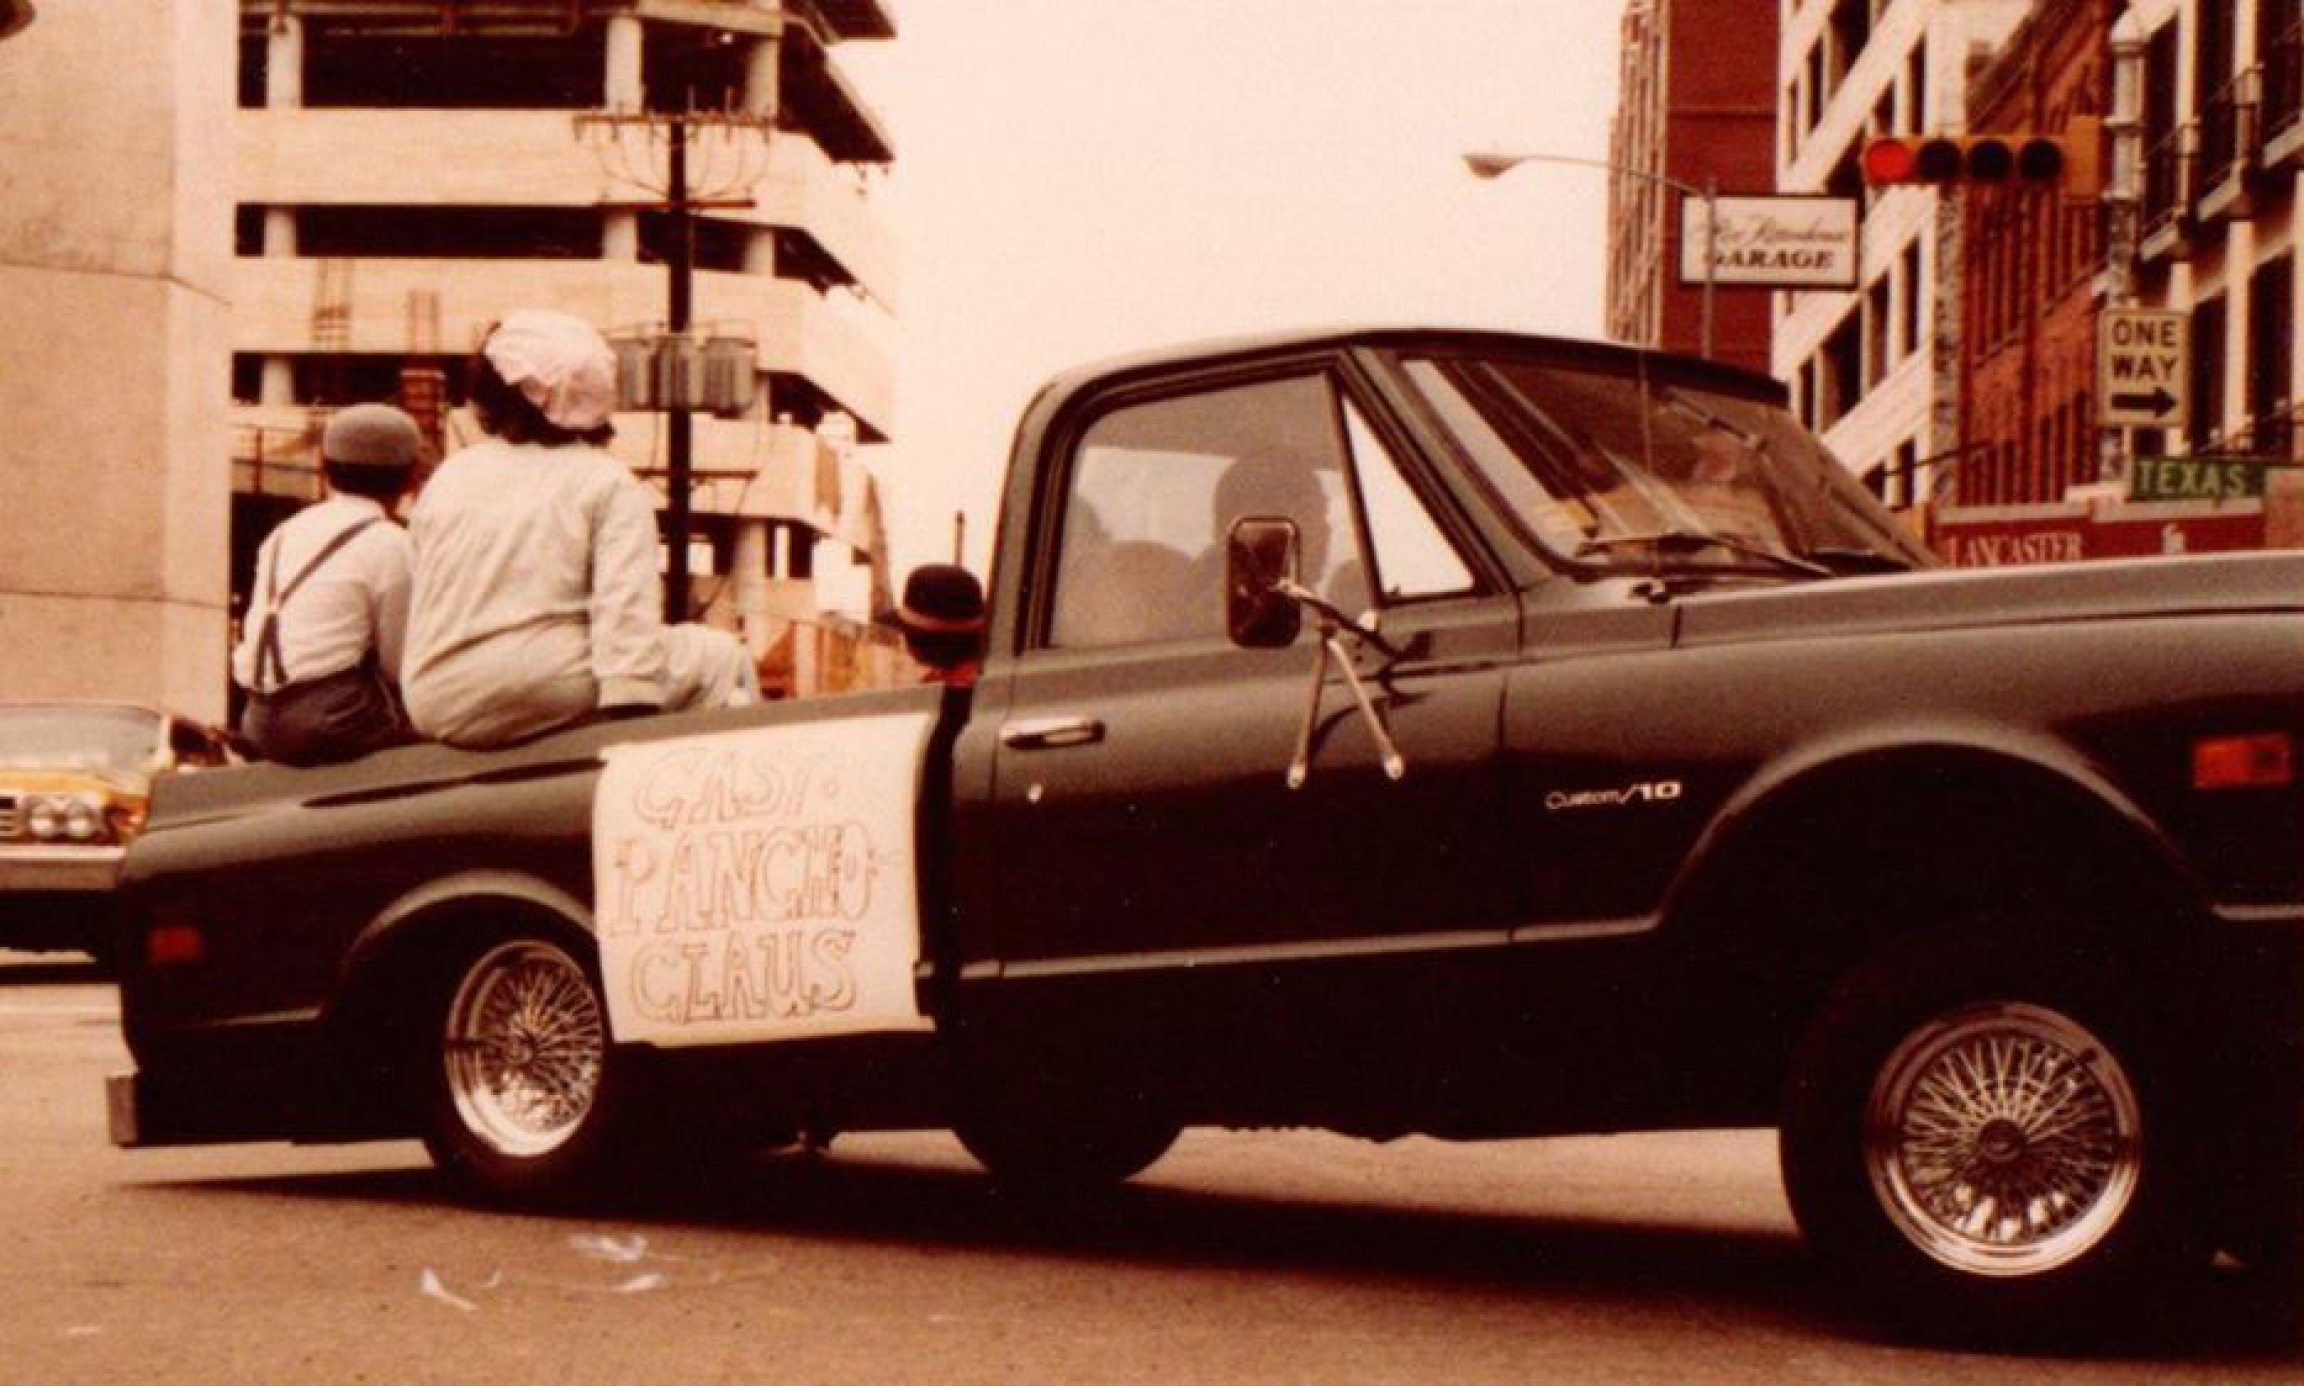 A pickup truck is shown with three people sitting in the back.